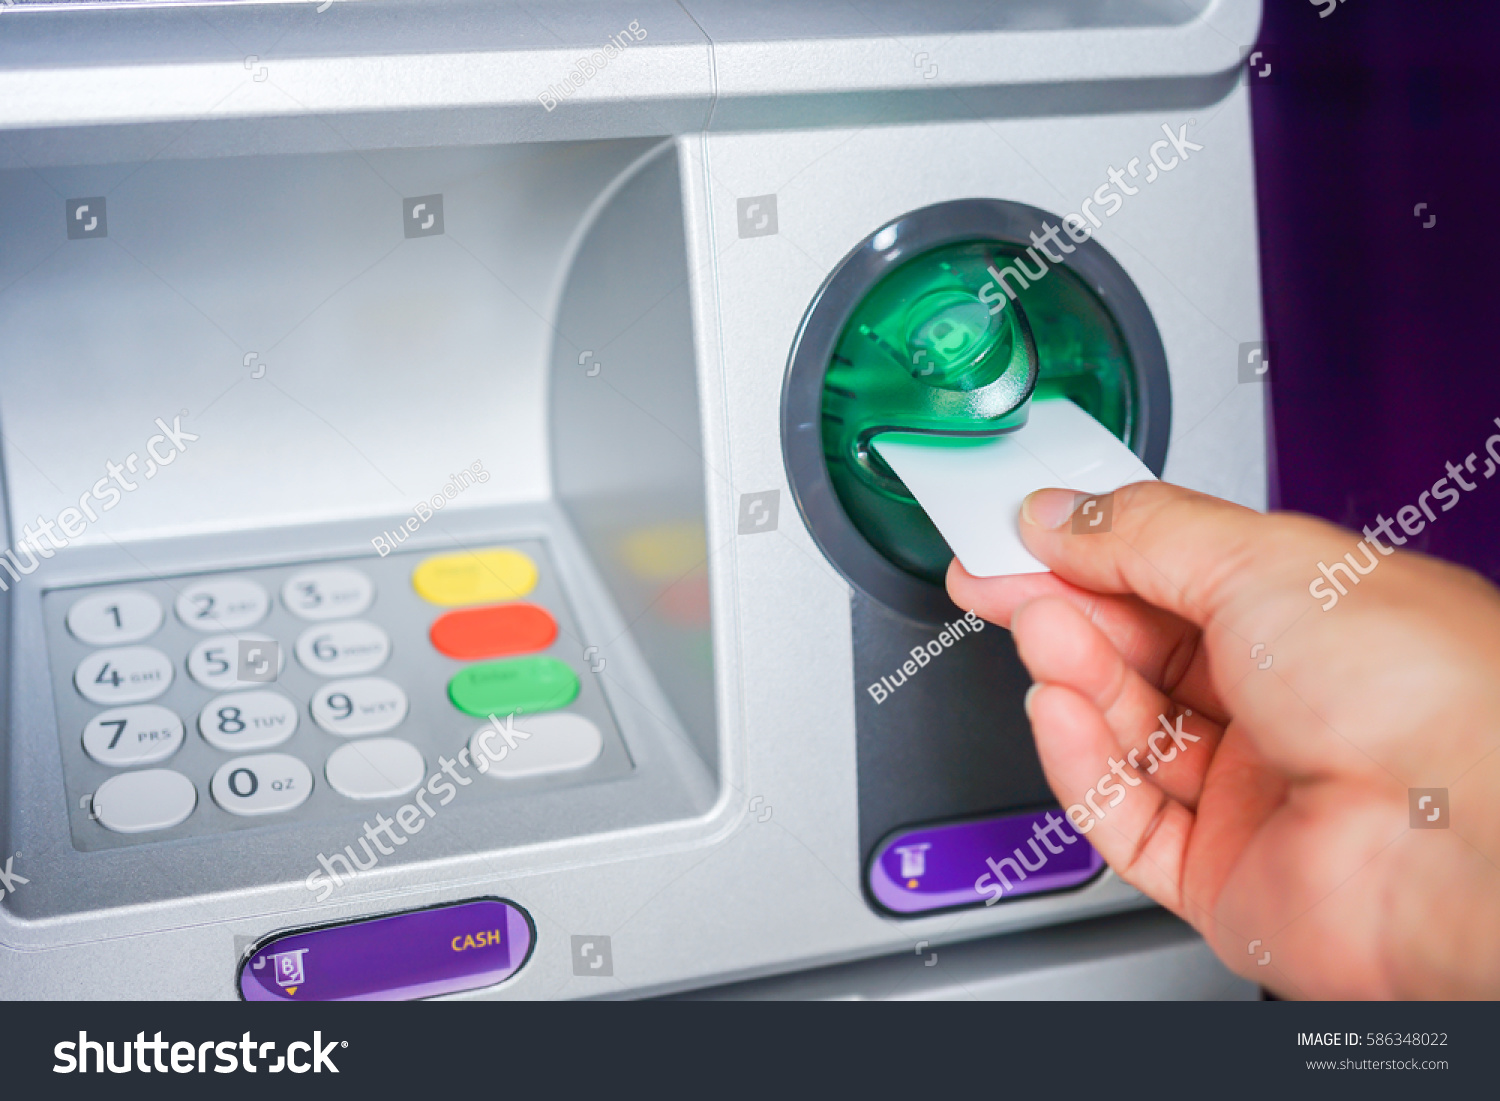 Slot machines for money with withdrawal